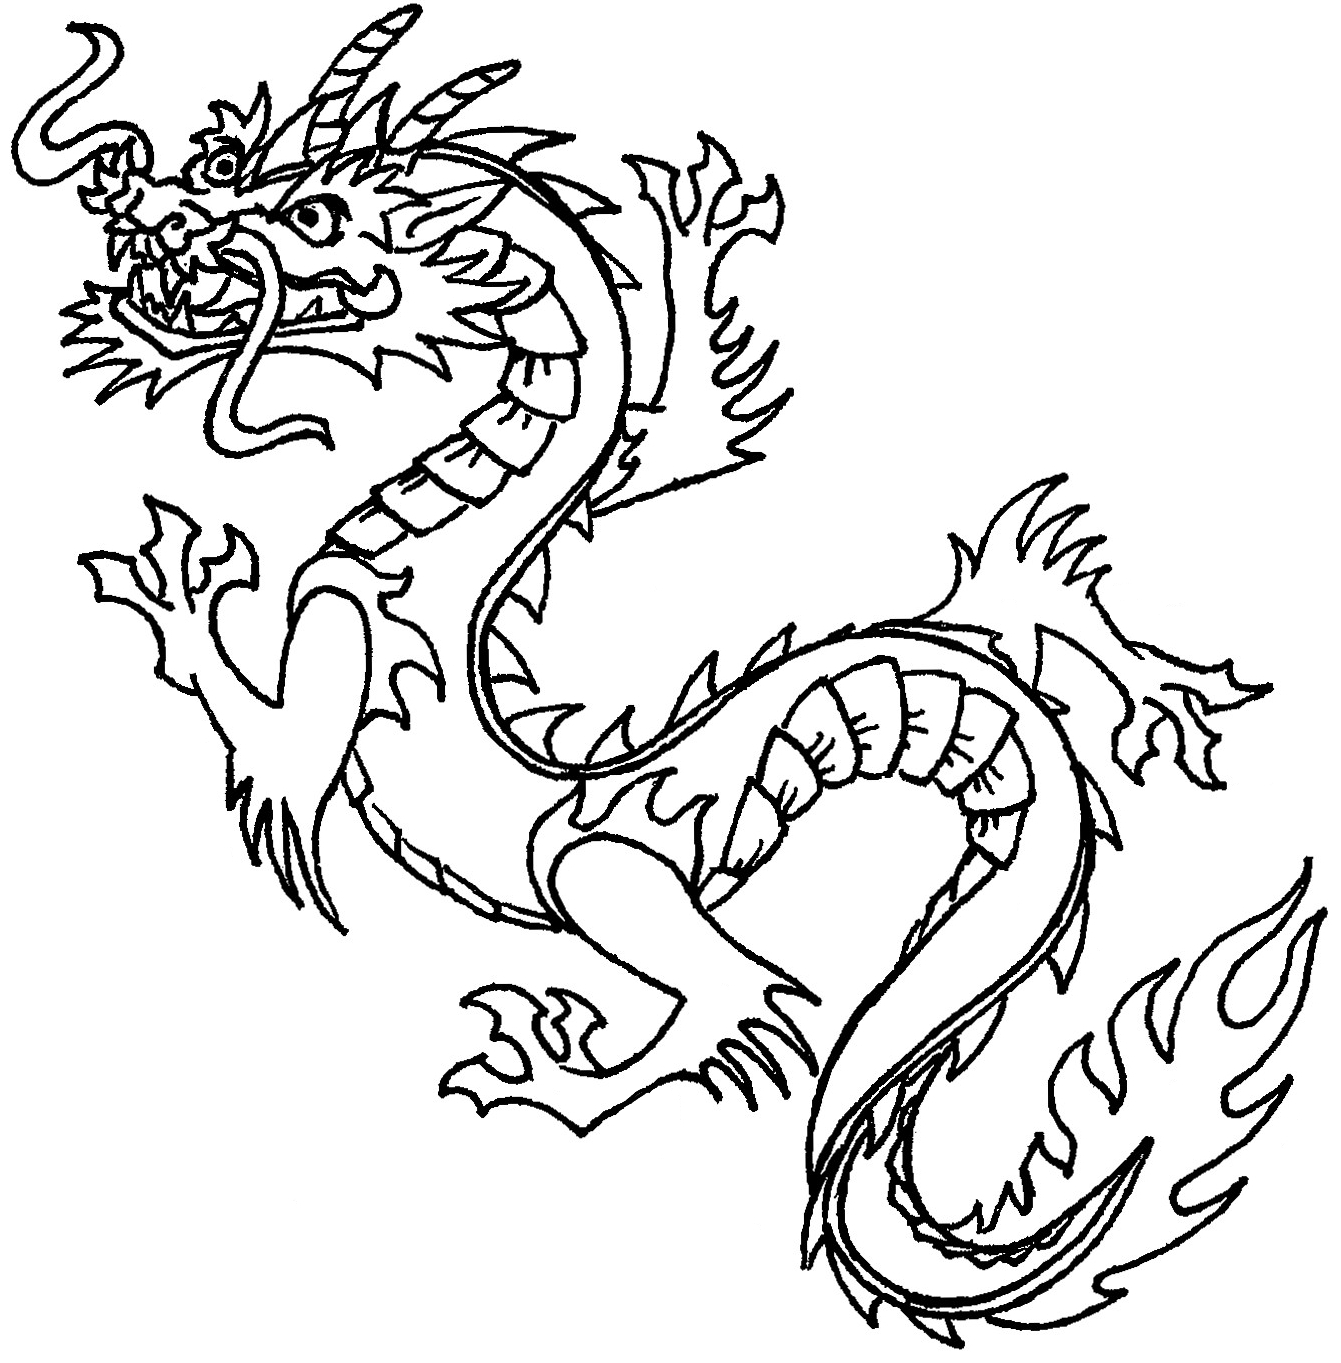 chinesse dragon coloring pages - photo#1